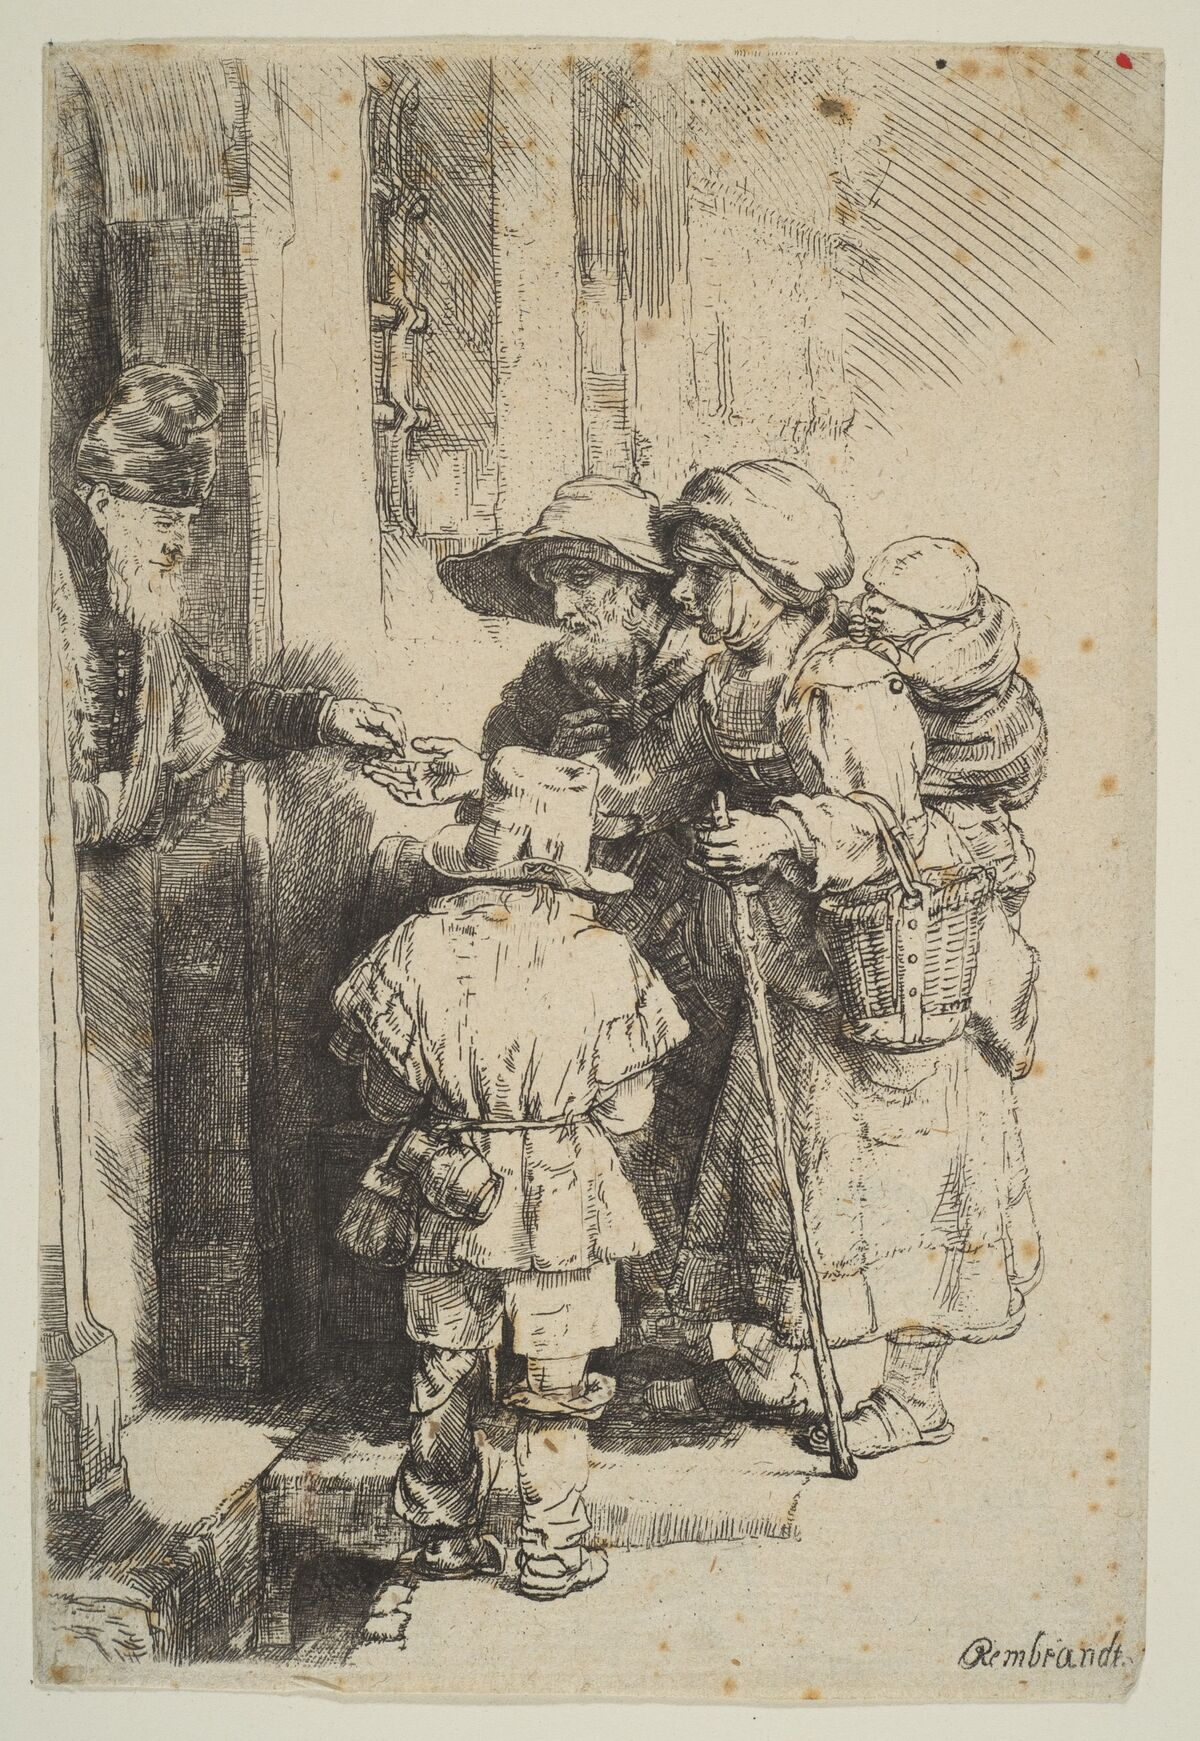 Rembrandt van Rijn, Beggars Receiving Alms at the Door of a House, 1648. Photo via The Metropolitan Museum of Modern Art.